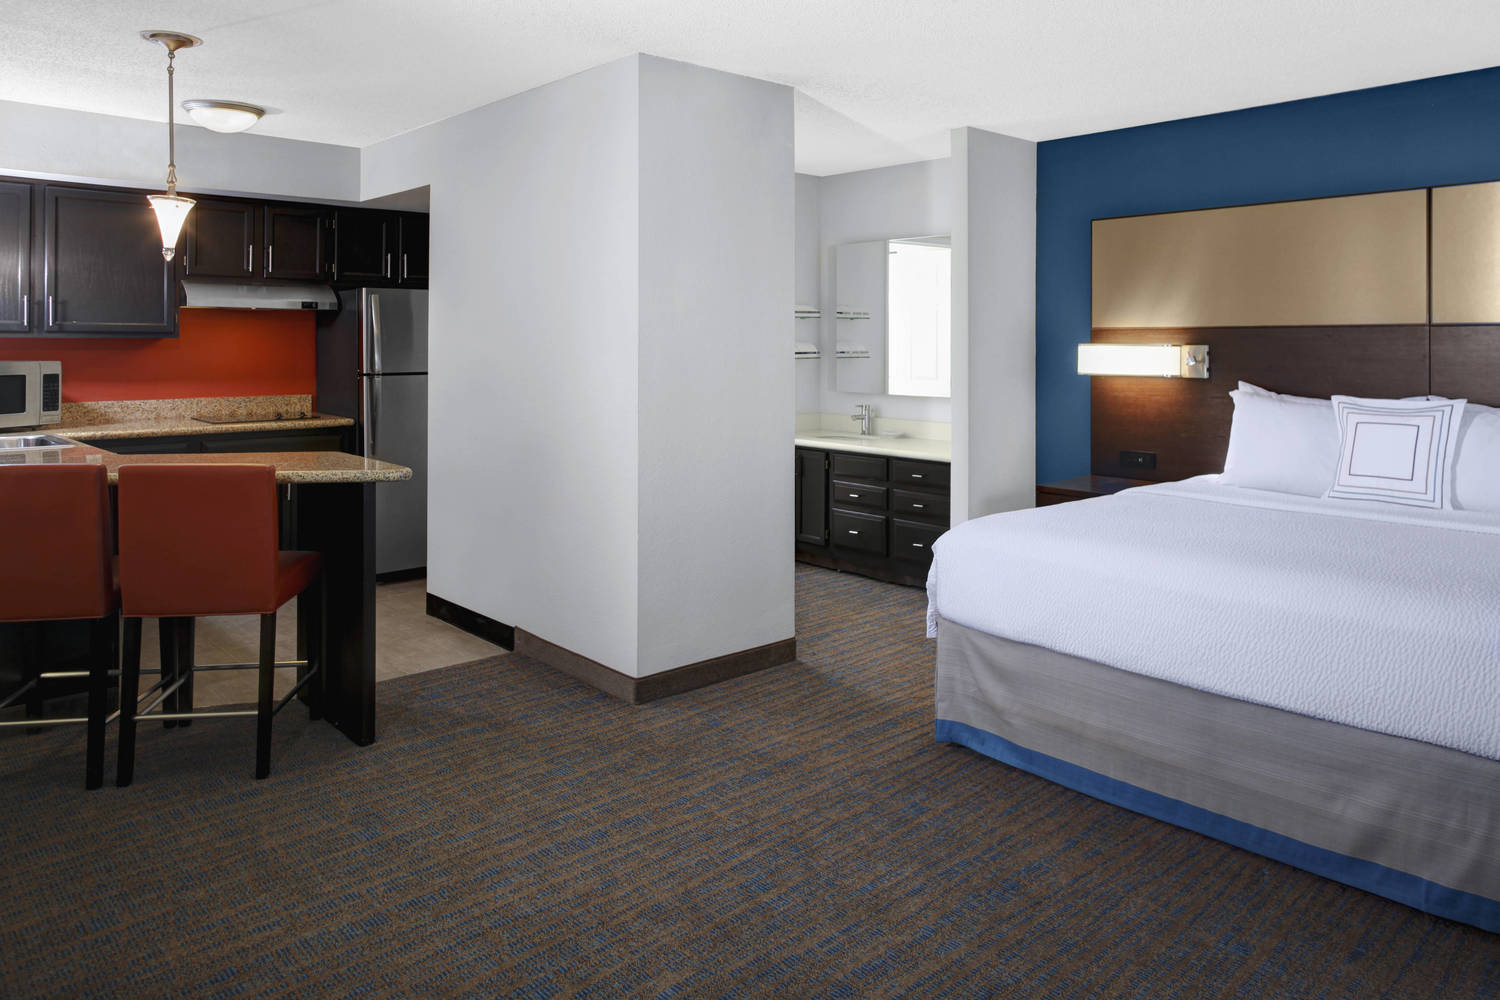 Rejuvenate for the next day with our fully equipped kitchen and new, luxurious Marriott bedding.